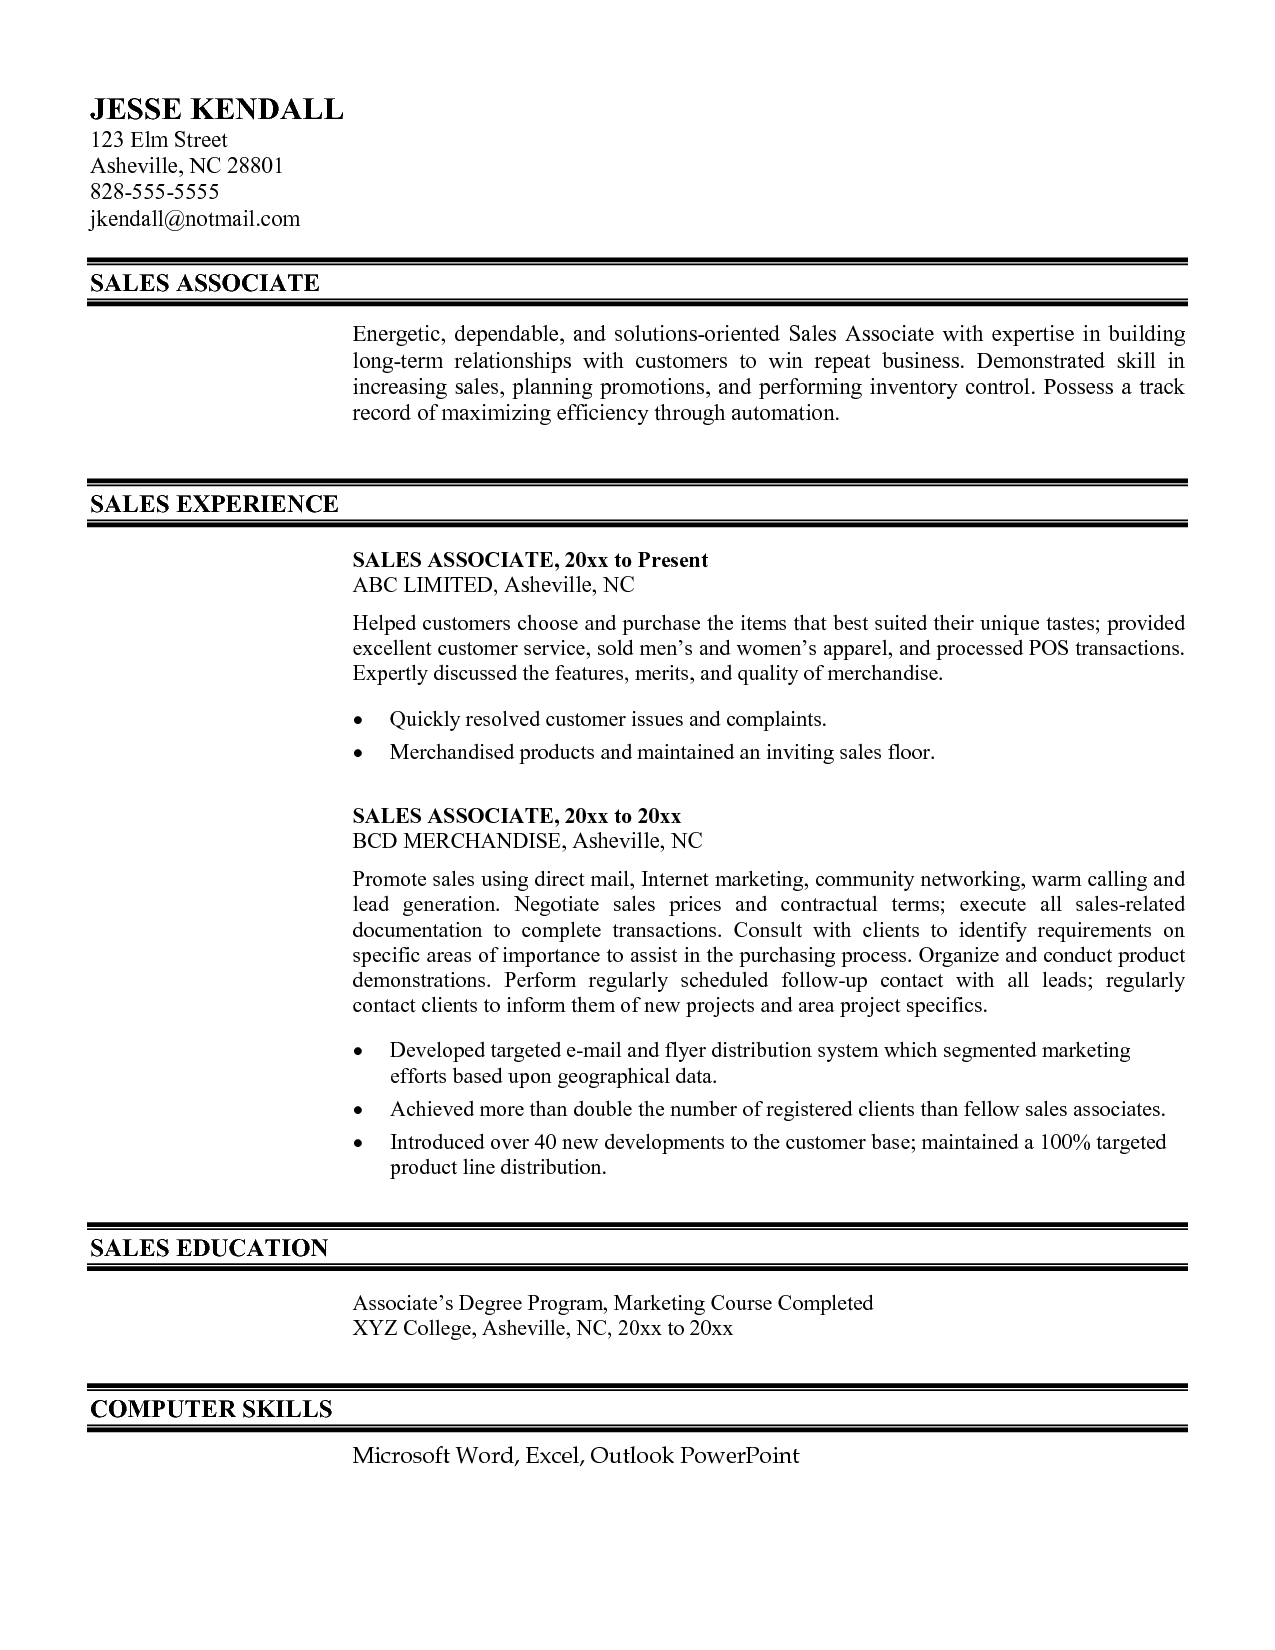 Example Of Sales Associate Resume Retail Sales Associate Sample Resume  Resume Cv Cover Letter.  Retail Sales Associate Resume Example